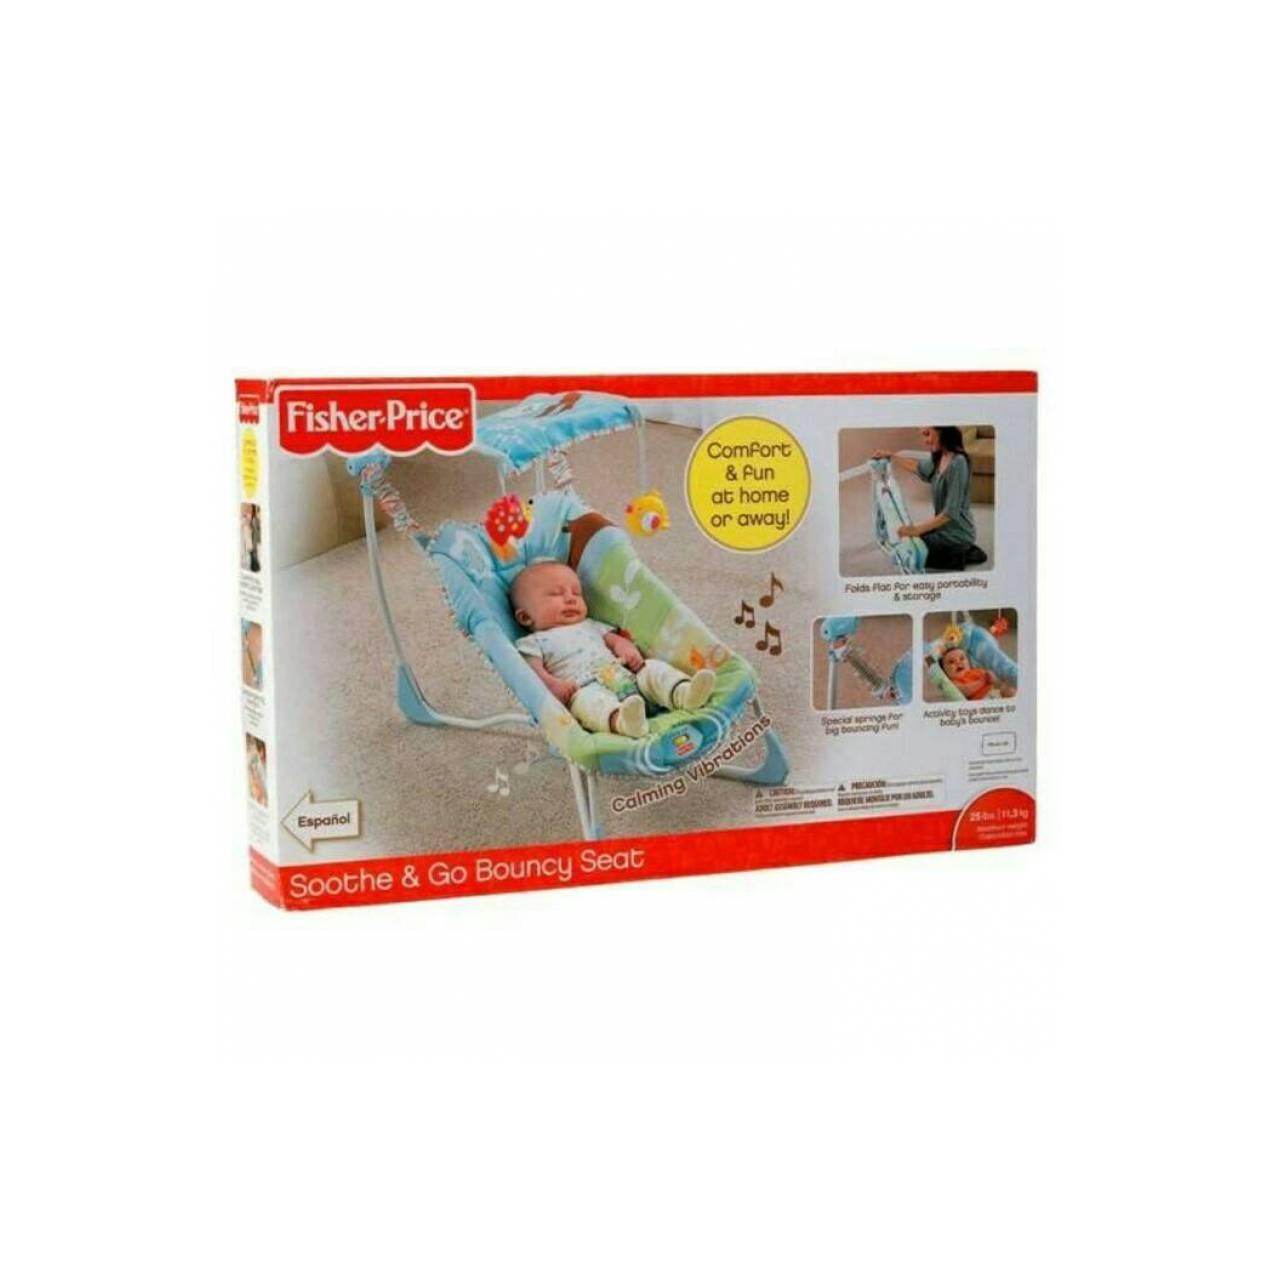 Fisher Price Soothe & Go Bouncy Seat